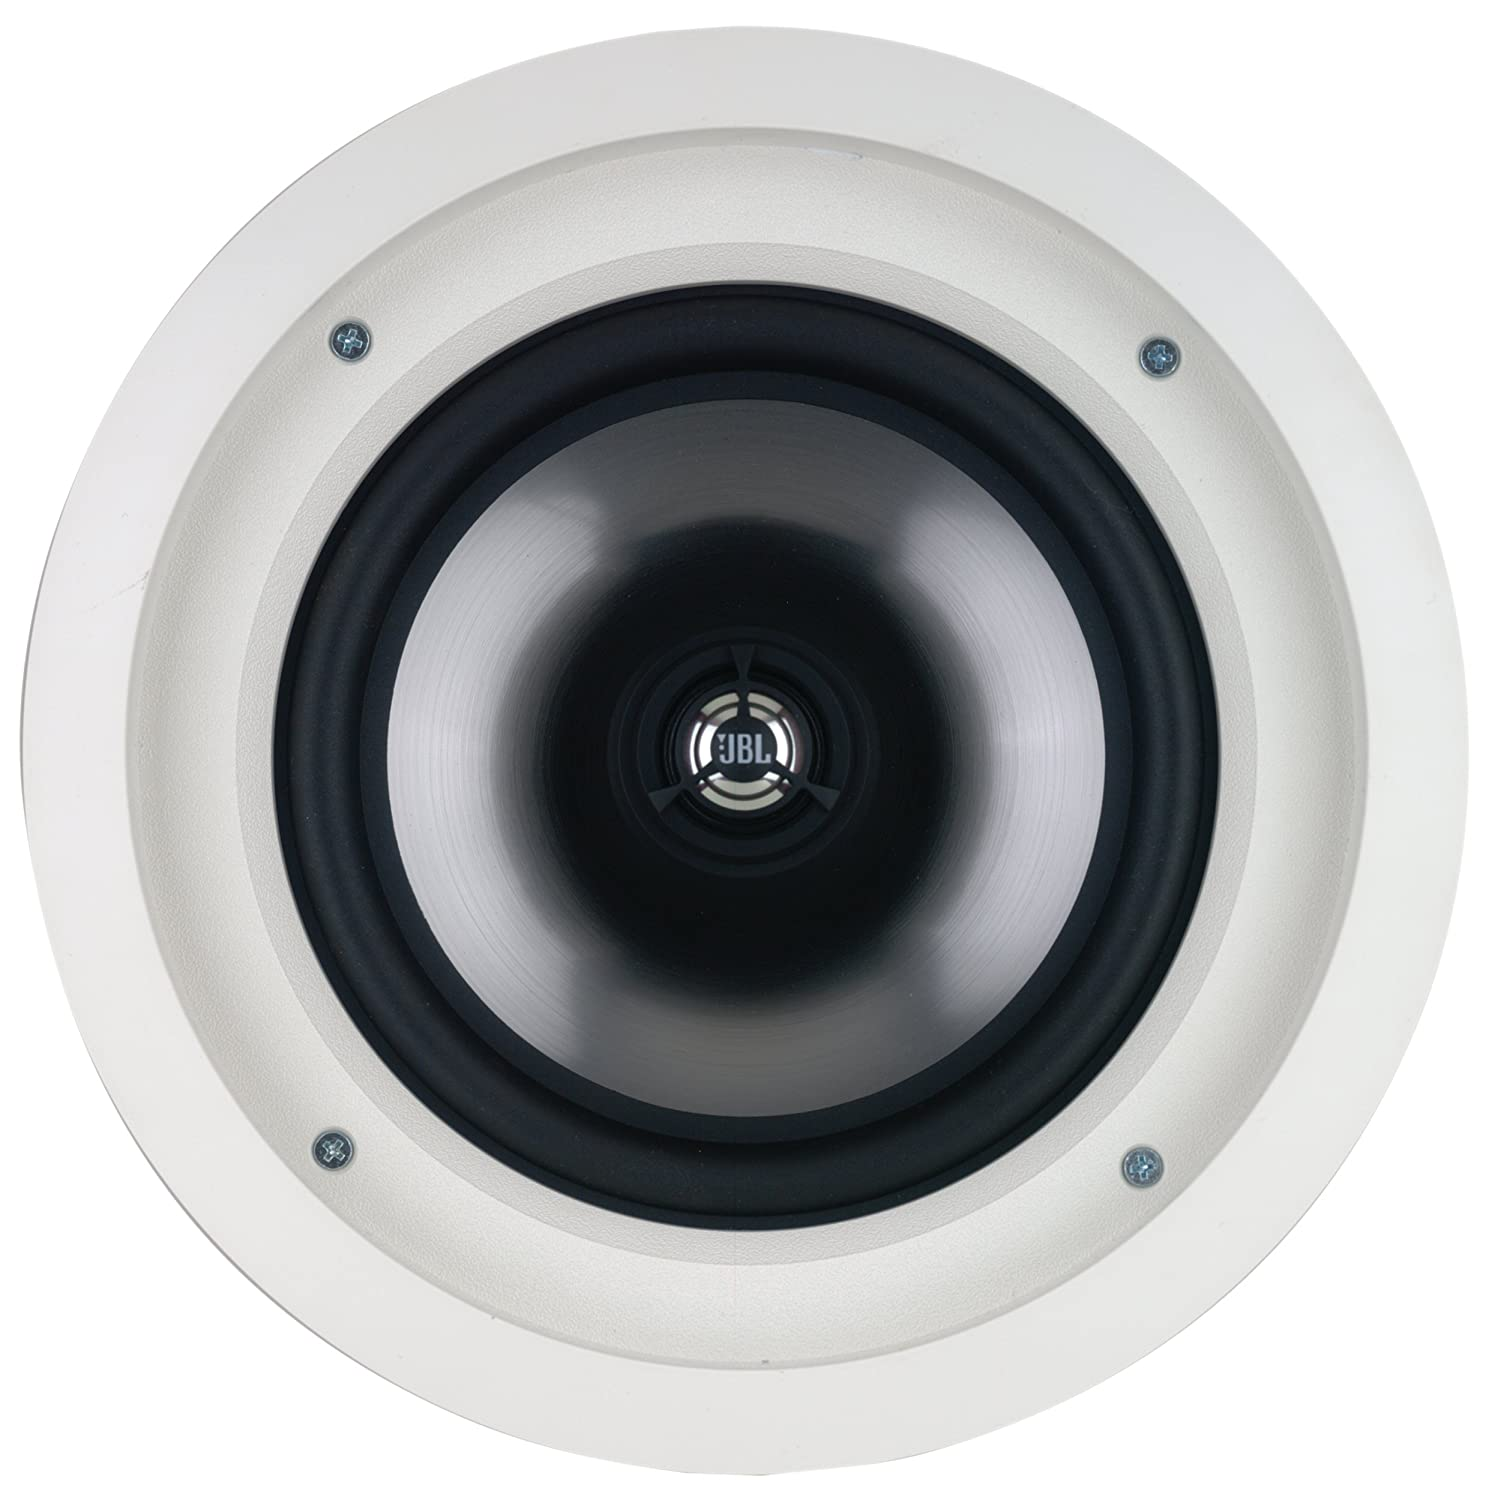 Leviton AEC80 (Architectural Edition powered by JBL) 8-Inch Bluetooth Ceiling Speakers